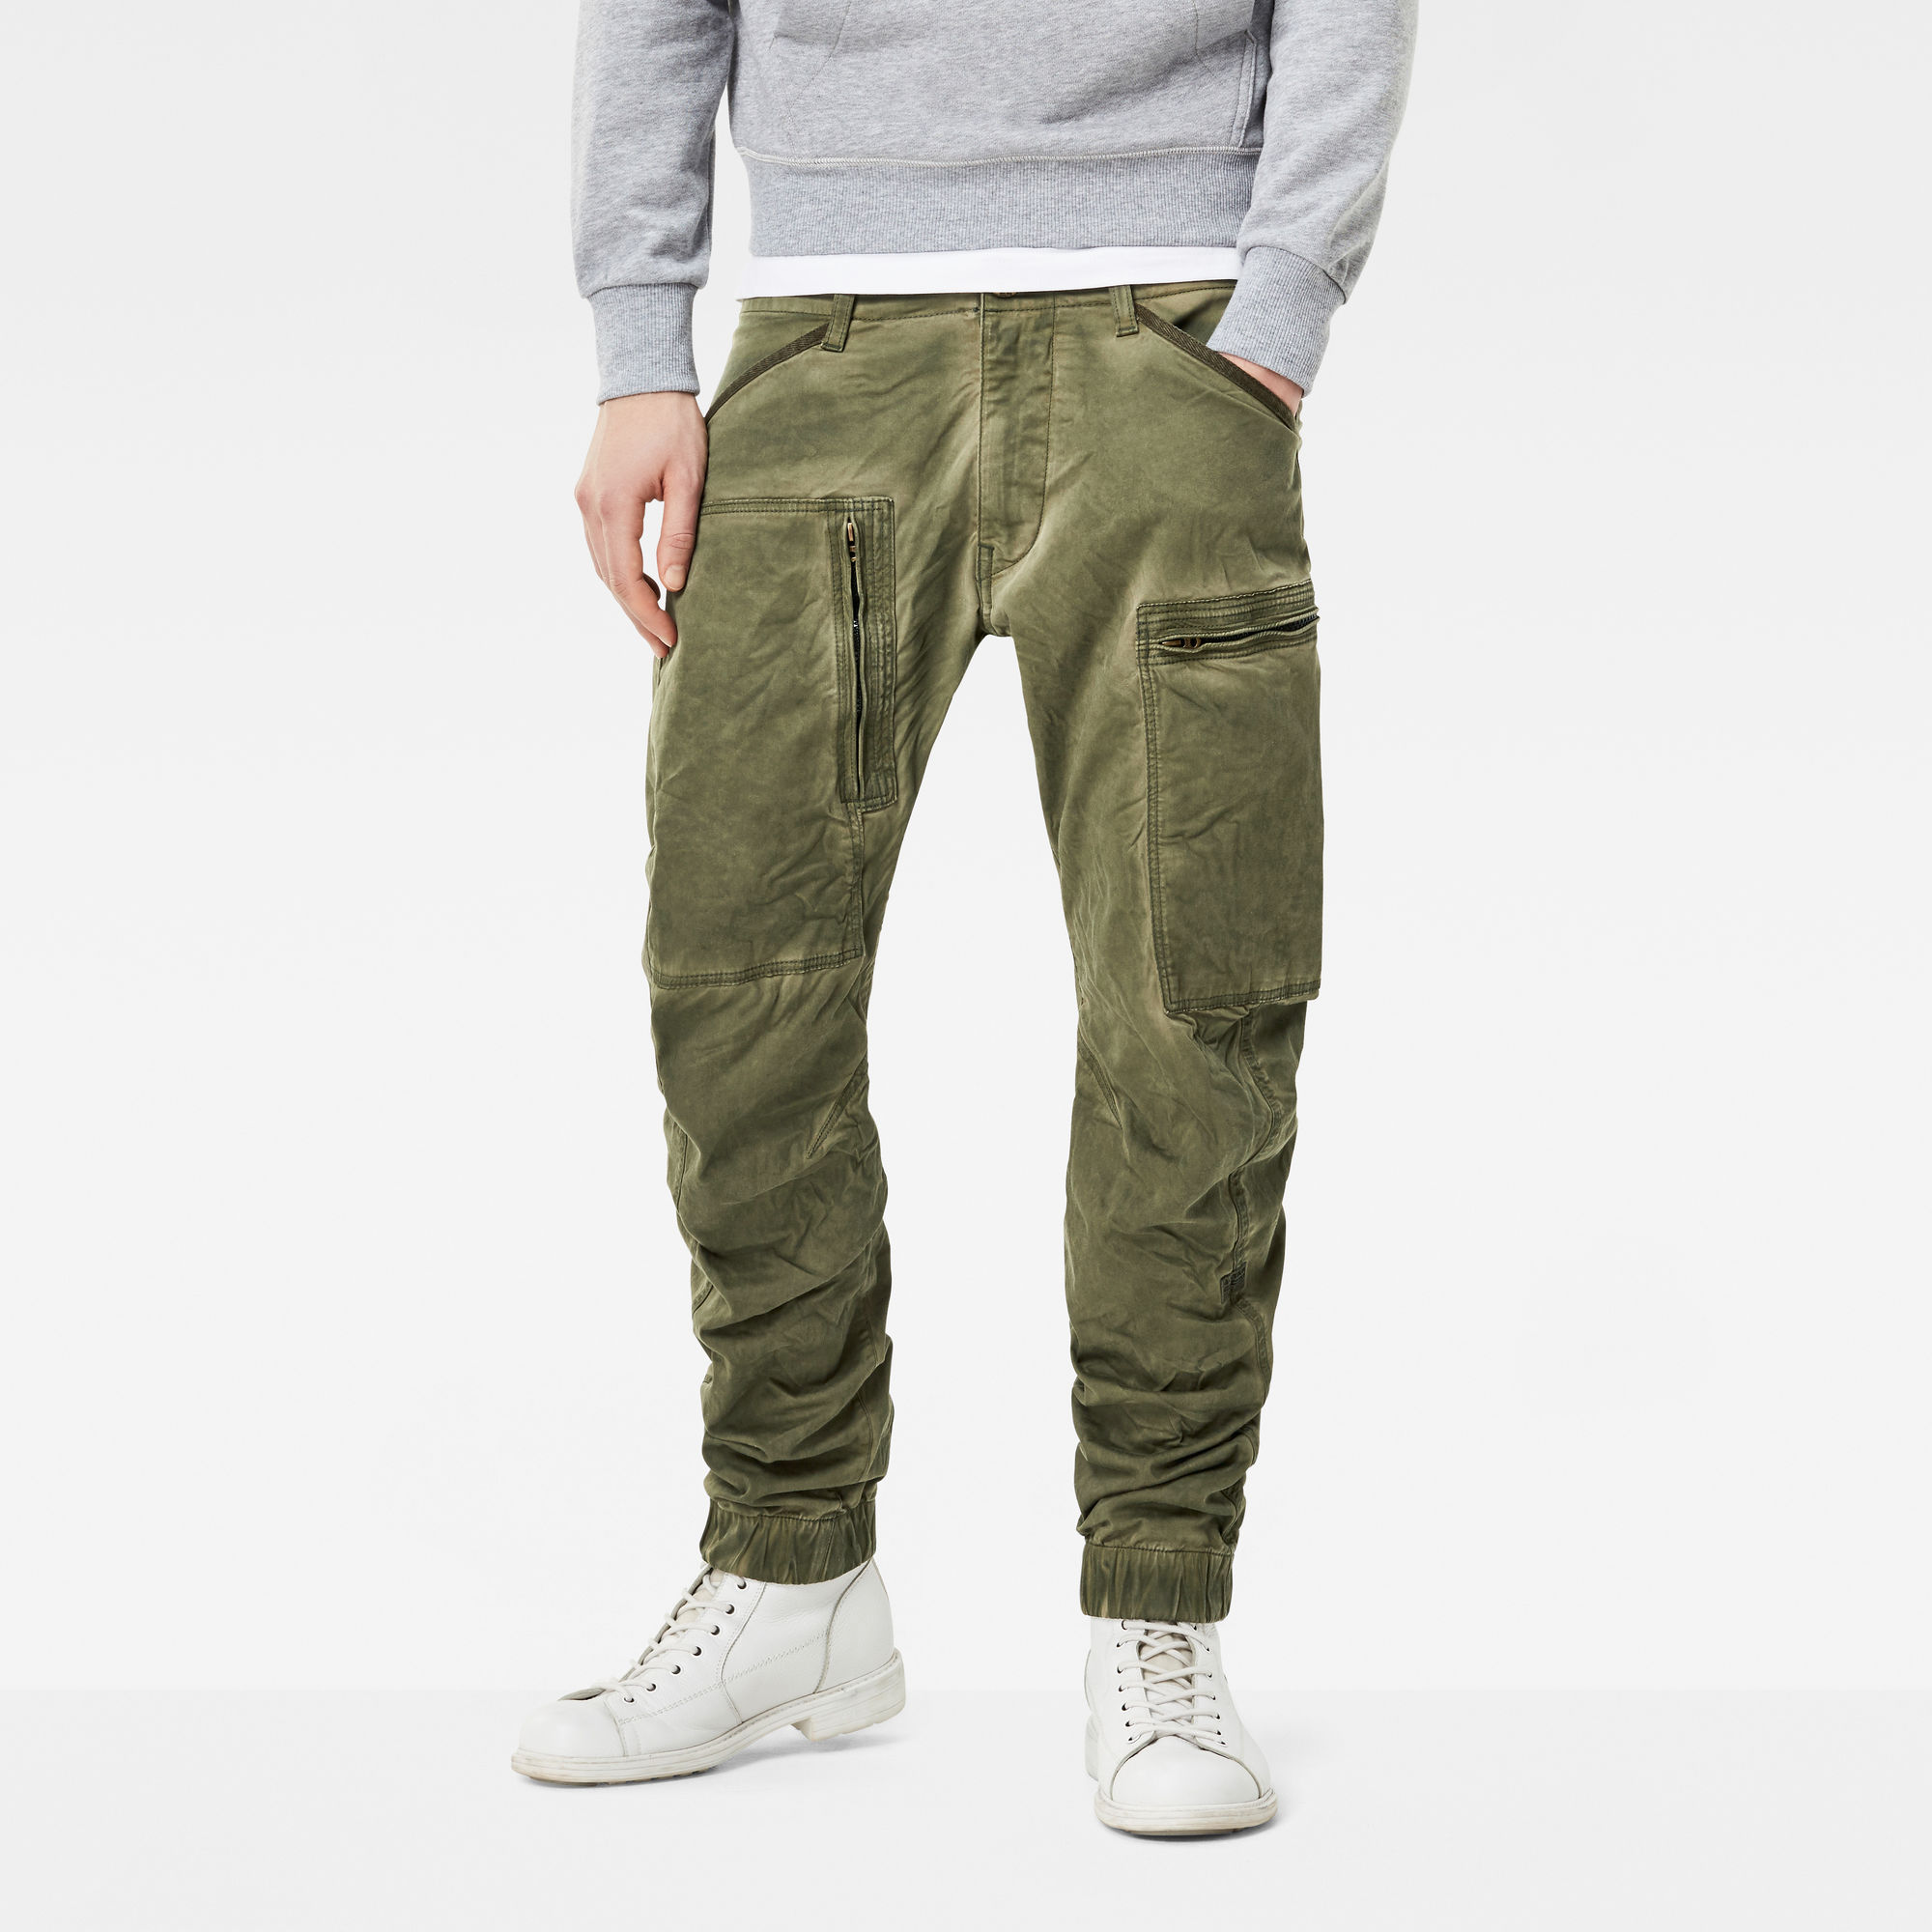 Image of G Star Raw Powel 3D Tapered Cuffed Cargo Pants